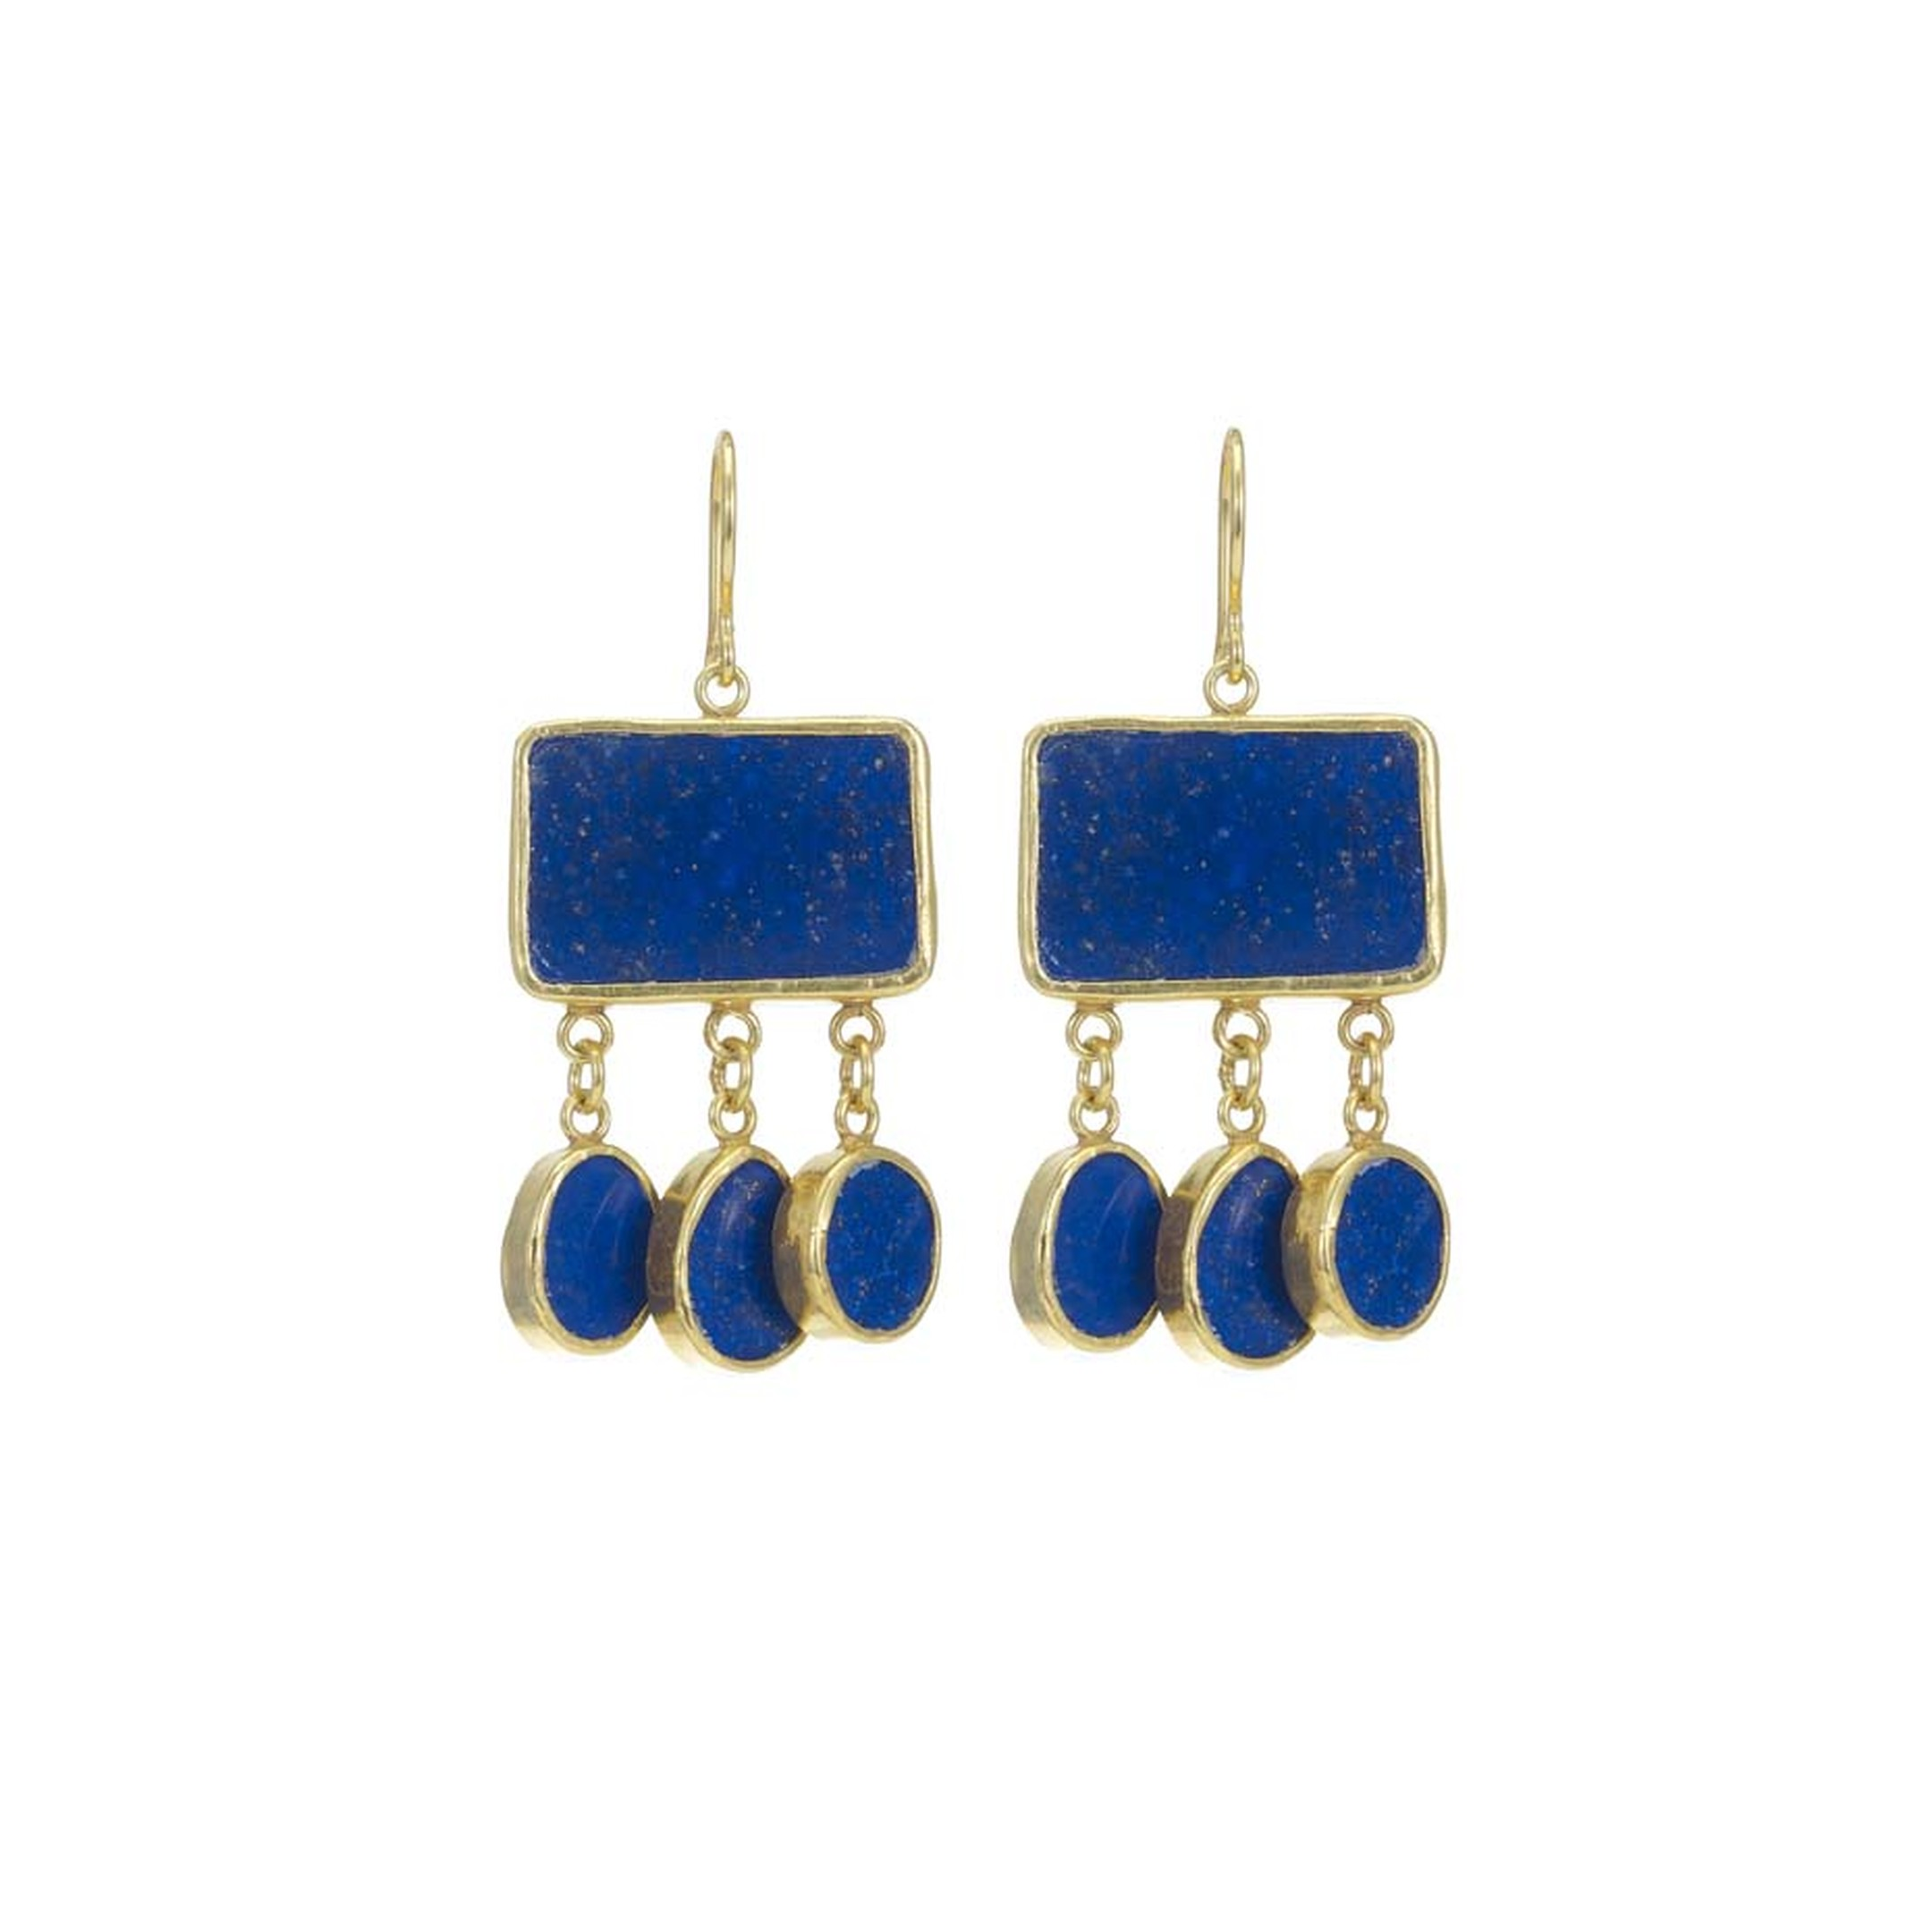 Pippa Small's Turquoise Mountain earrings in gold, set with lapis lazuli